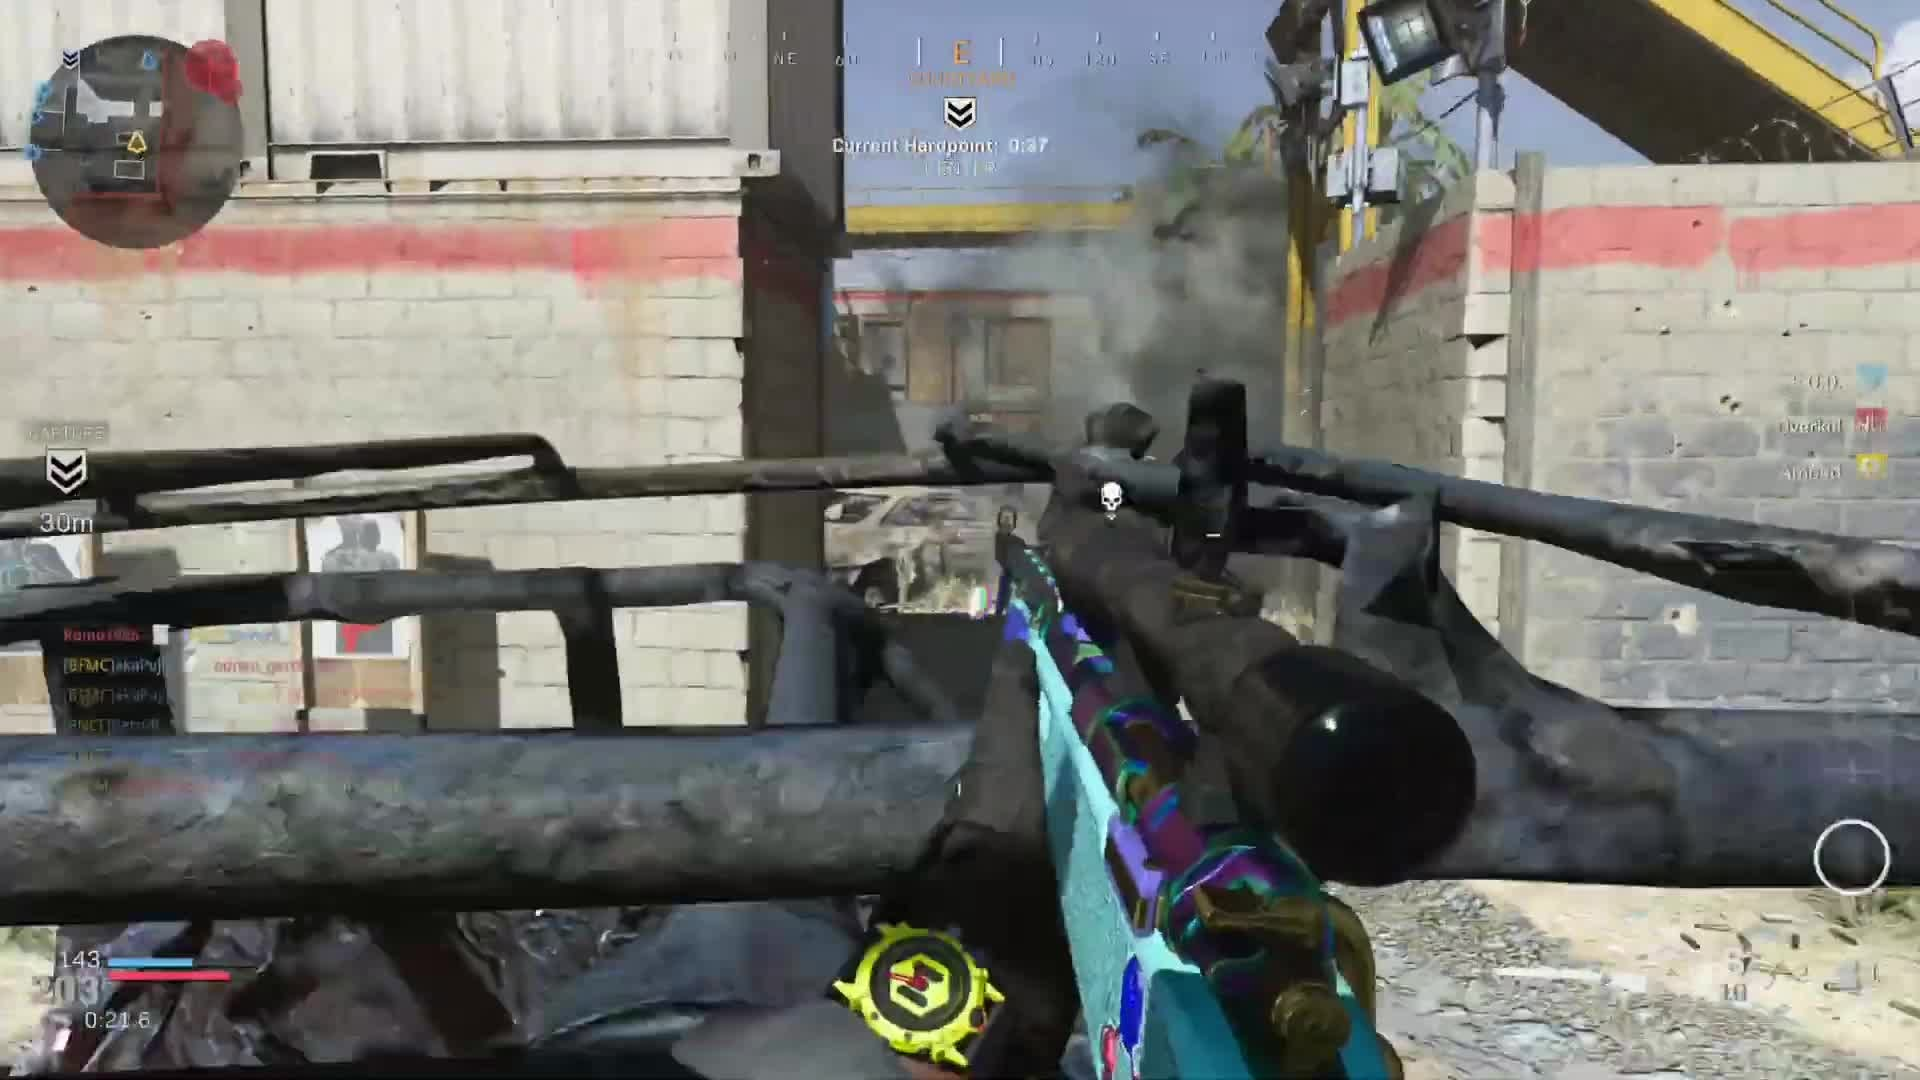 Call of Duty: Promotions - Been practicing with the kar, any tips on how to get better? video cover image 0